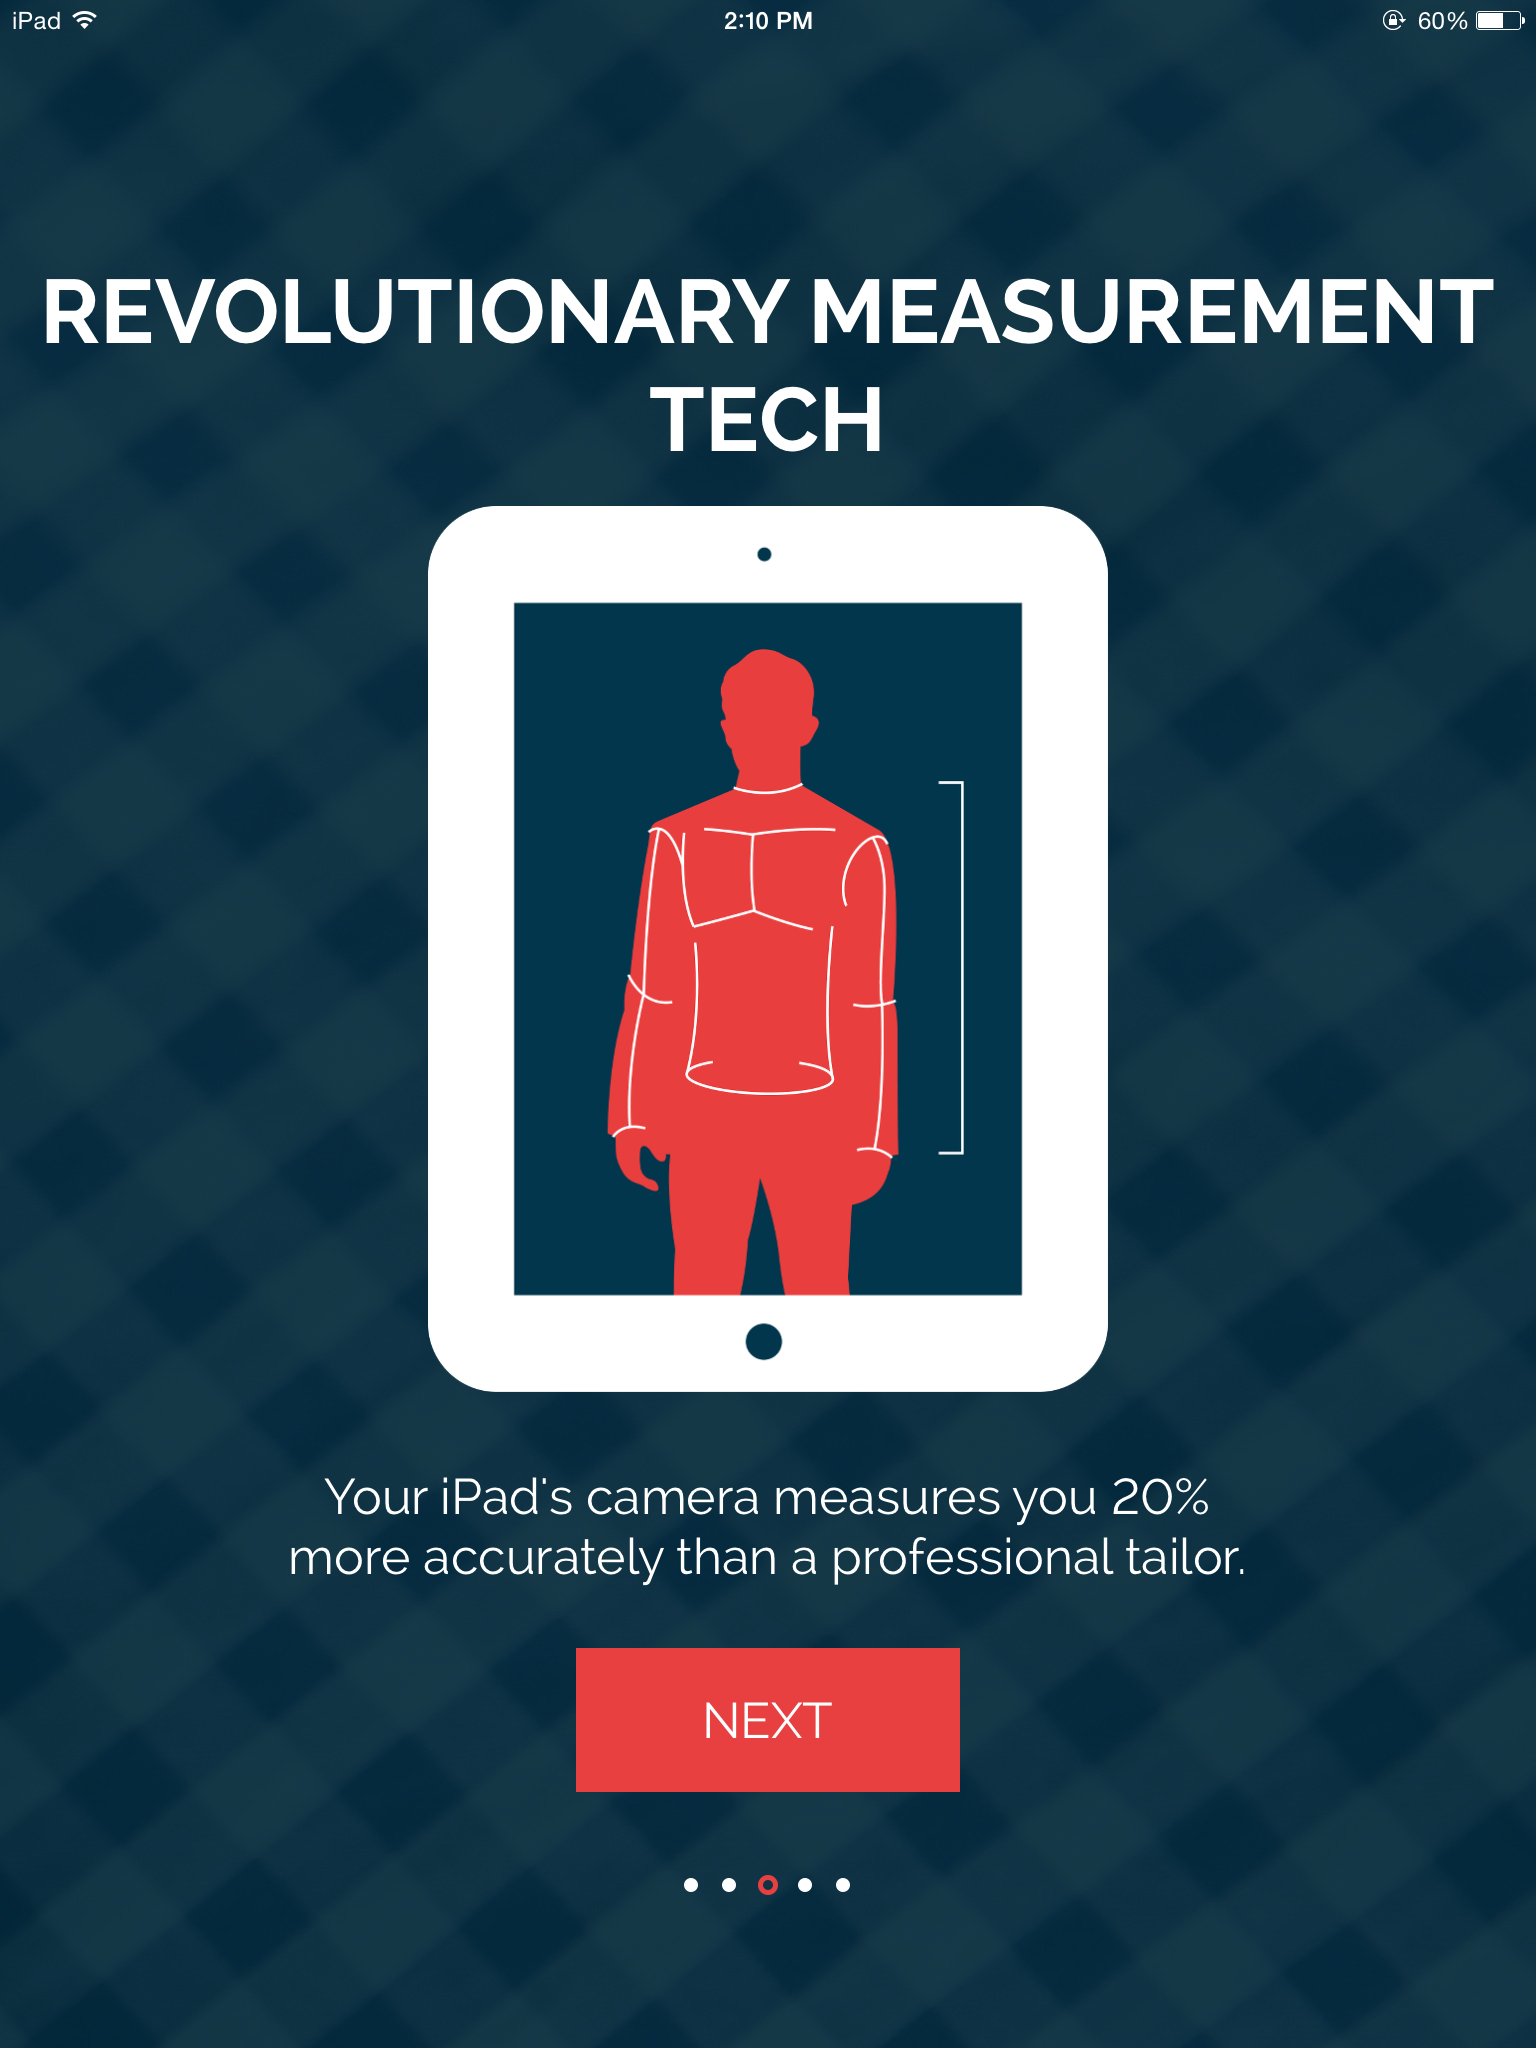 MTailor Offers A Mobile App To Design Custom-Fit Tailored Shirts